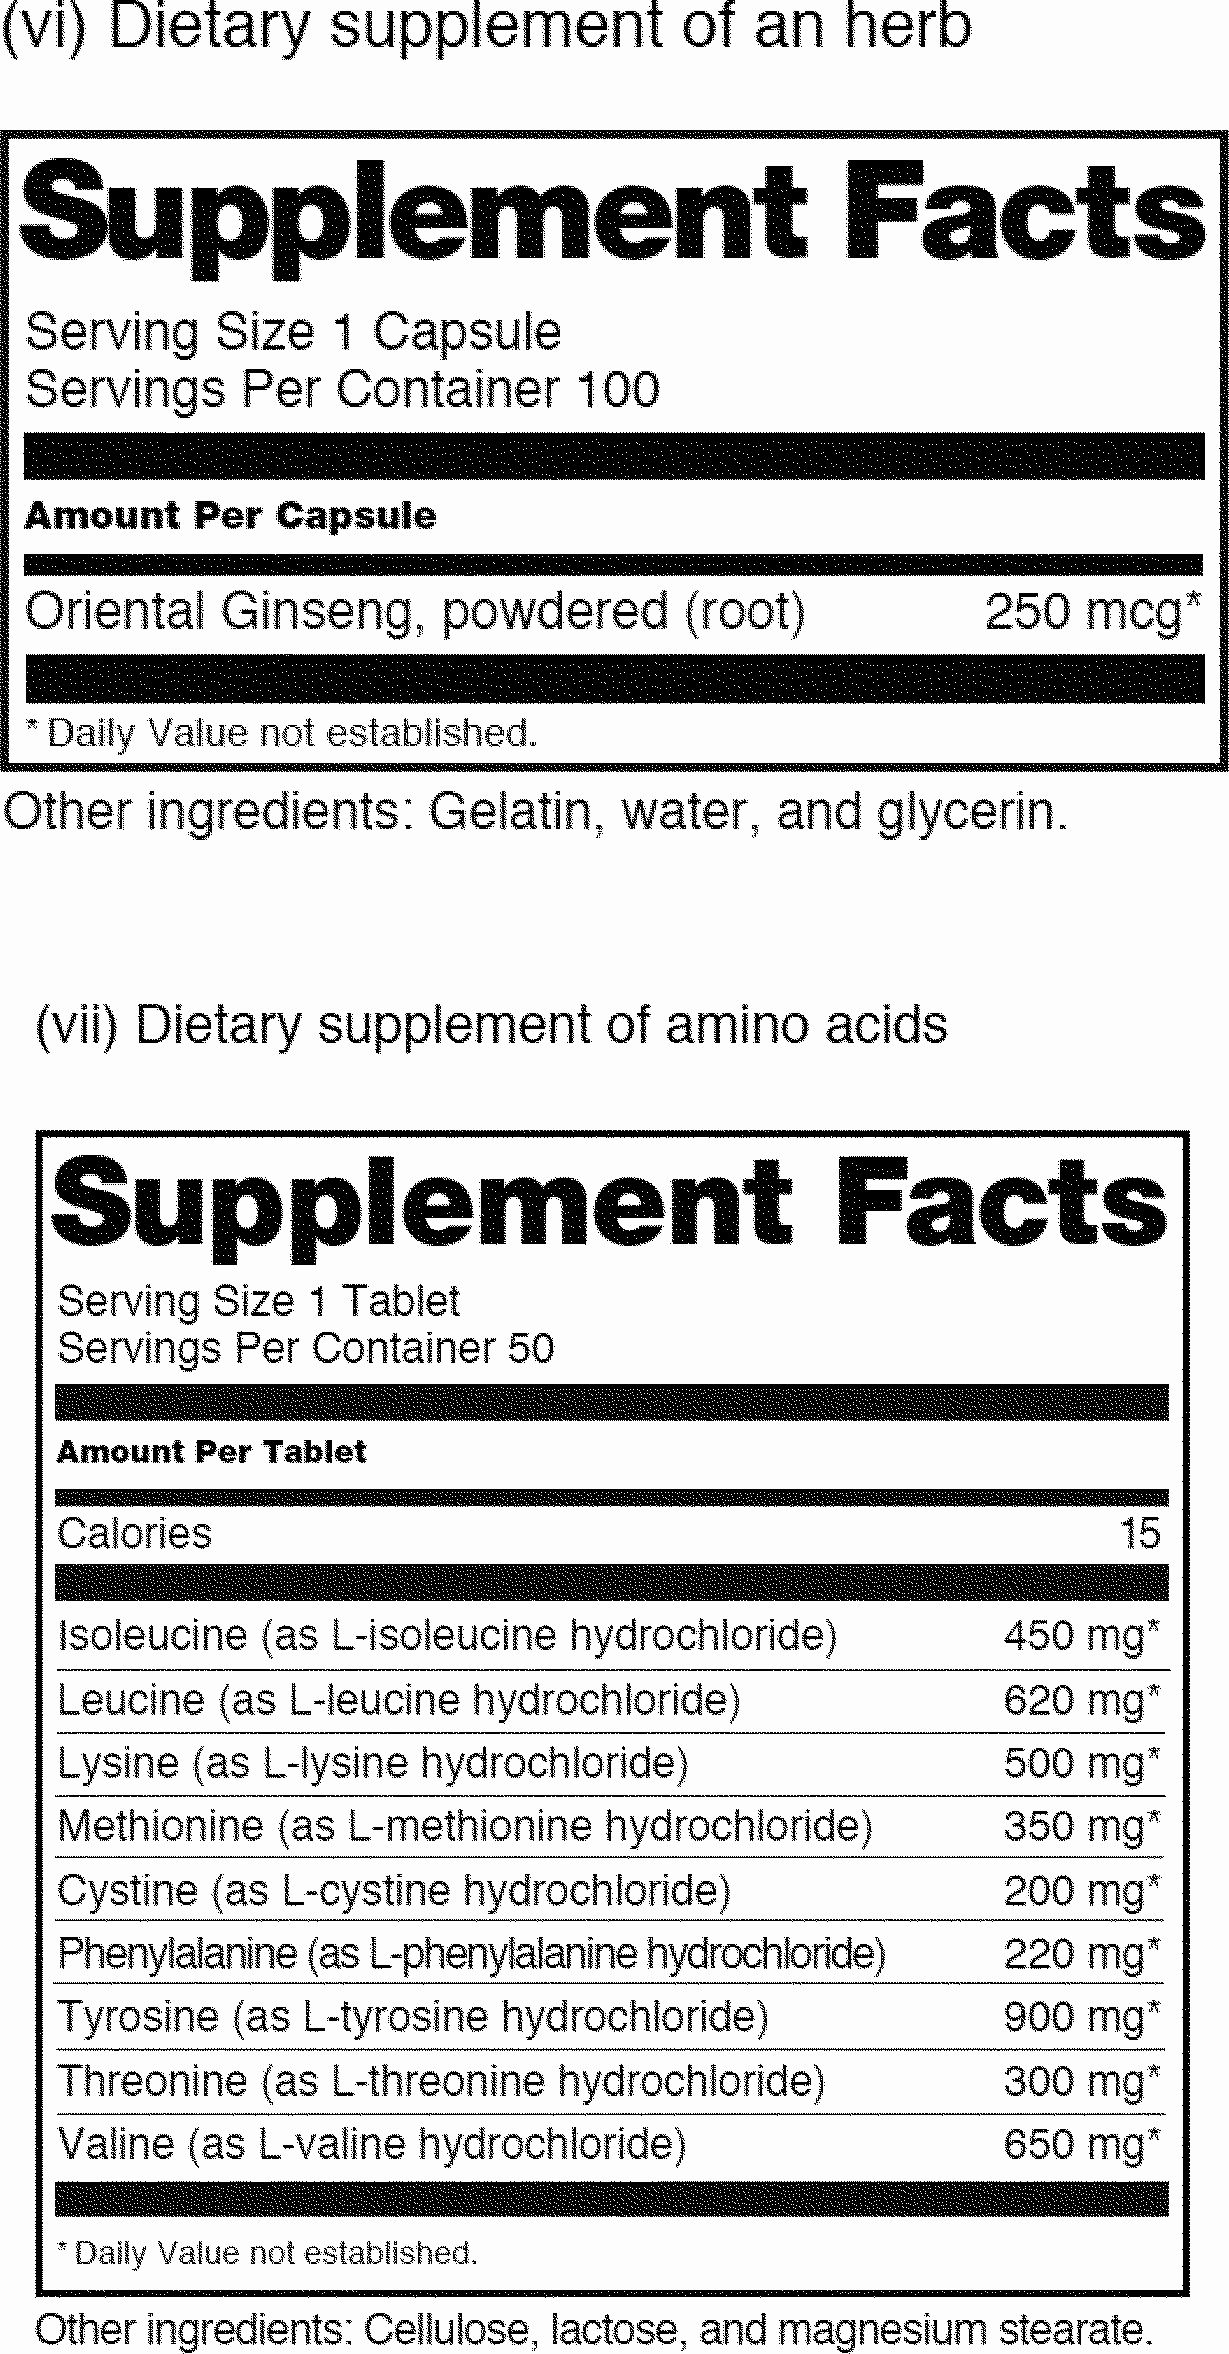 Supplement Facts Label Template Unique Nutrition Facts For Love Free Printable Awesome Collecti Label Templates Nutrition Facts Label Printable Label Templates